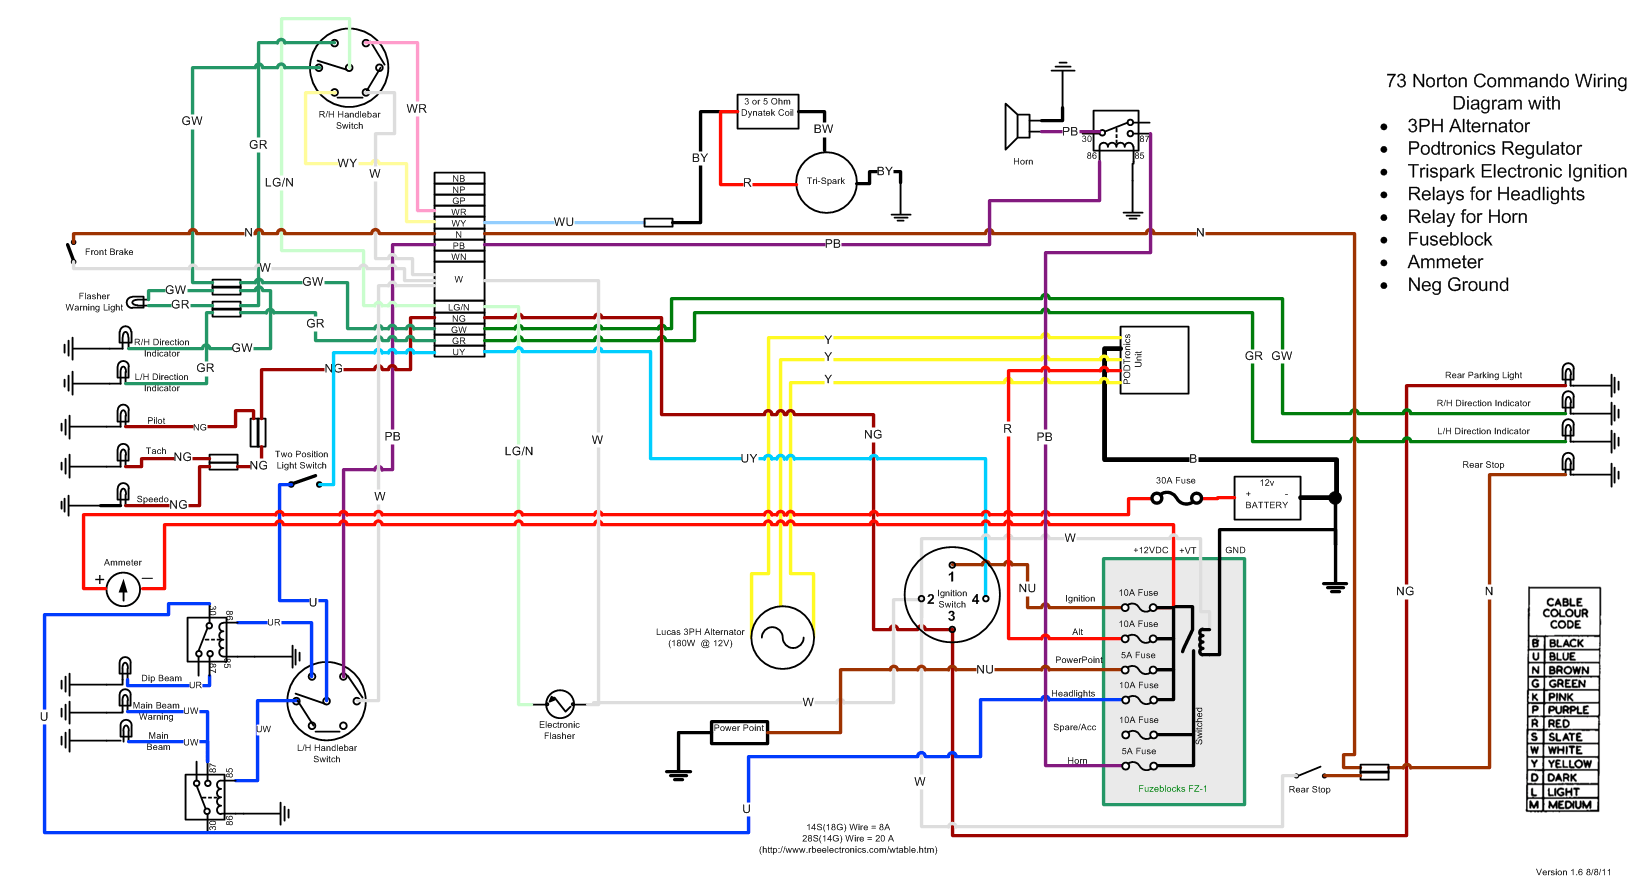 73wiringdiagram?resize\\\\=665%2C359 honda cn250 cdi wiring diagram 6 wire cdi box diagram, honda 90 cdi wiring diagram honda 150 at bayanpartner.co